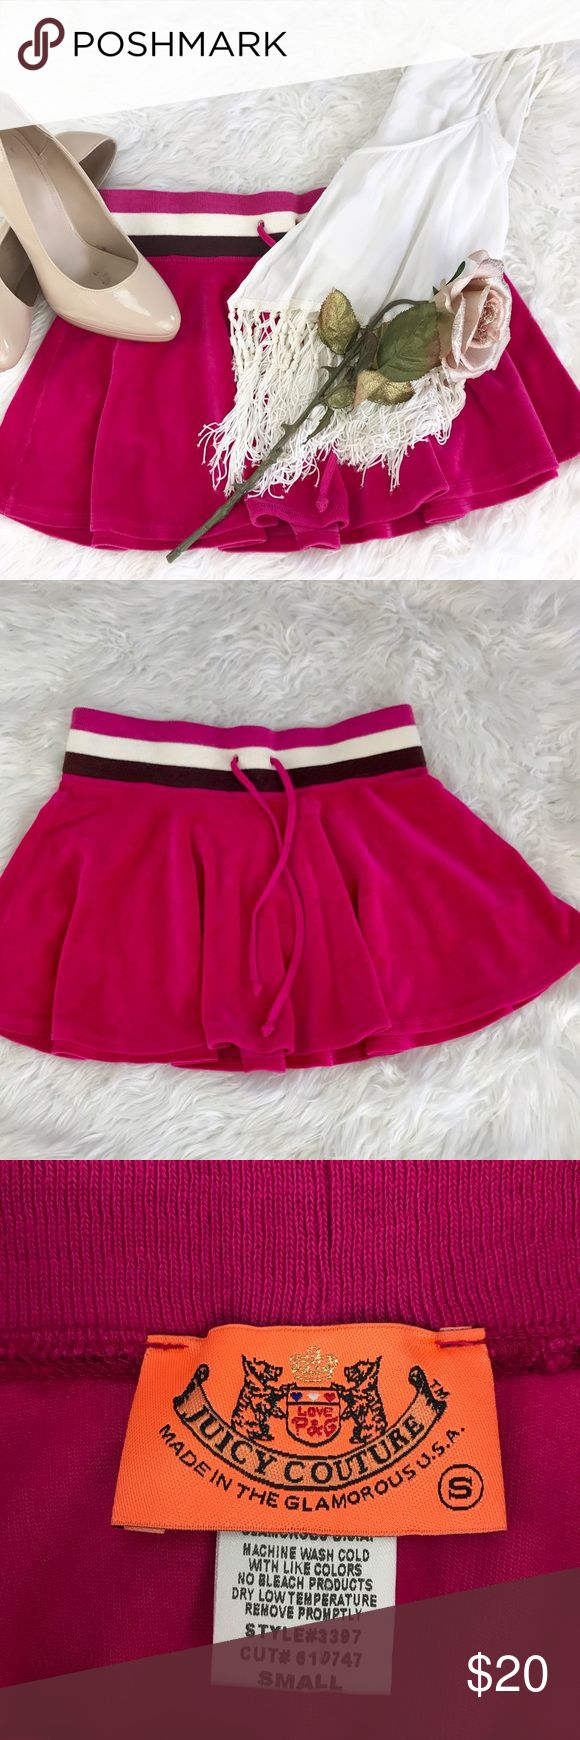 """💕SALE💕Juicy Couture Pink Velvet Mini Skirt Amazing Super Soft Juicy Couture Pink Velvet Mini Skirt 13"""" from the top of the Skirt to the bottom 28"""" Elastic Band Waist Juicy Couture Skirts Mini"""